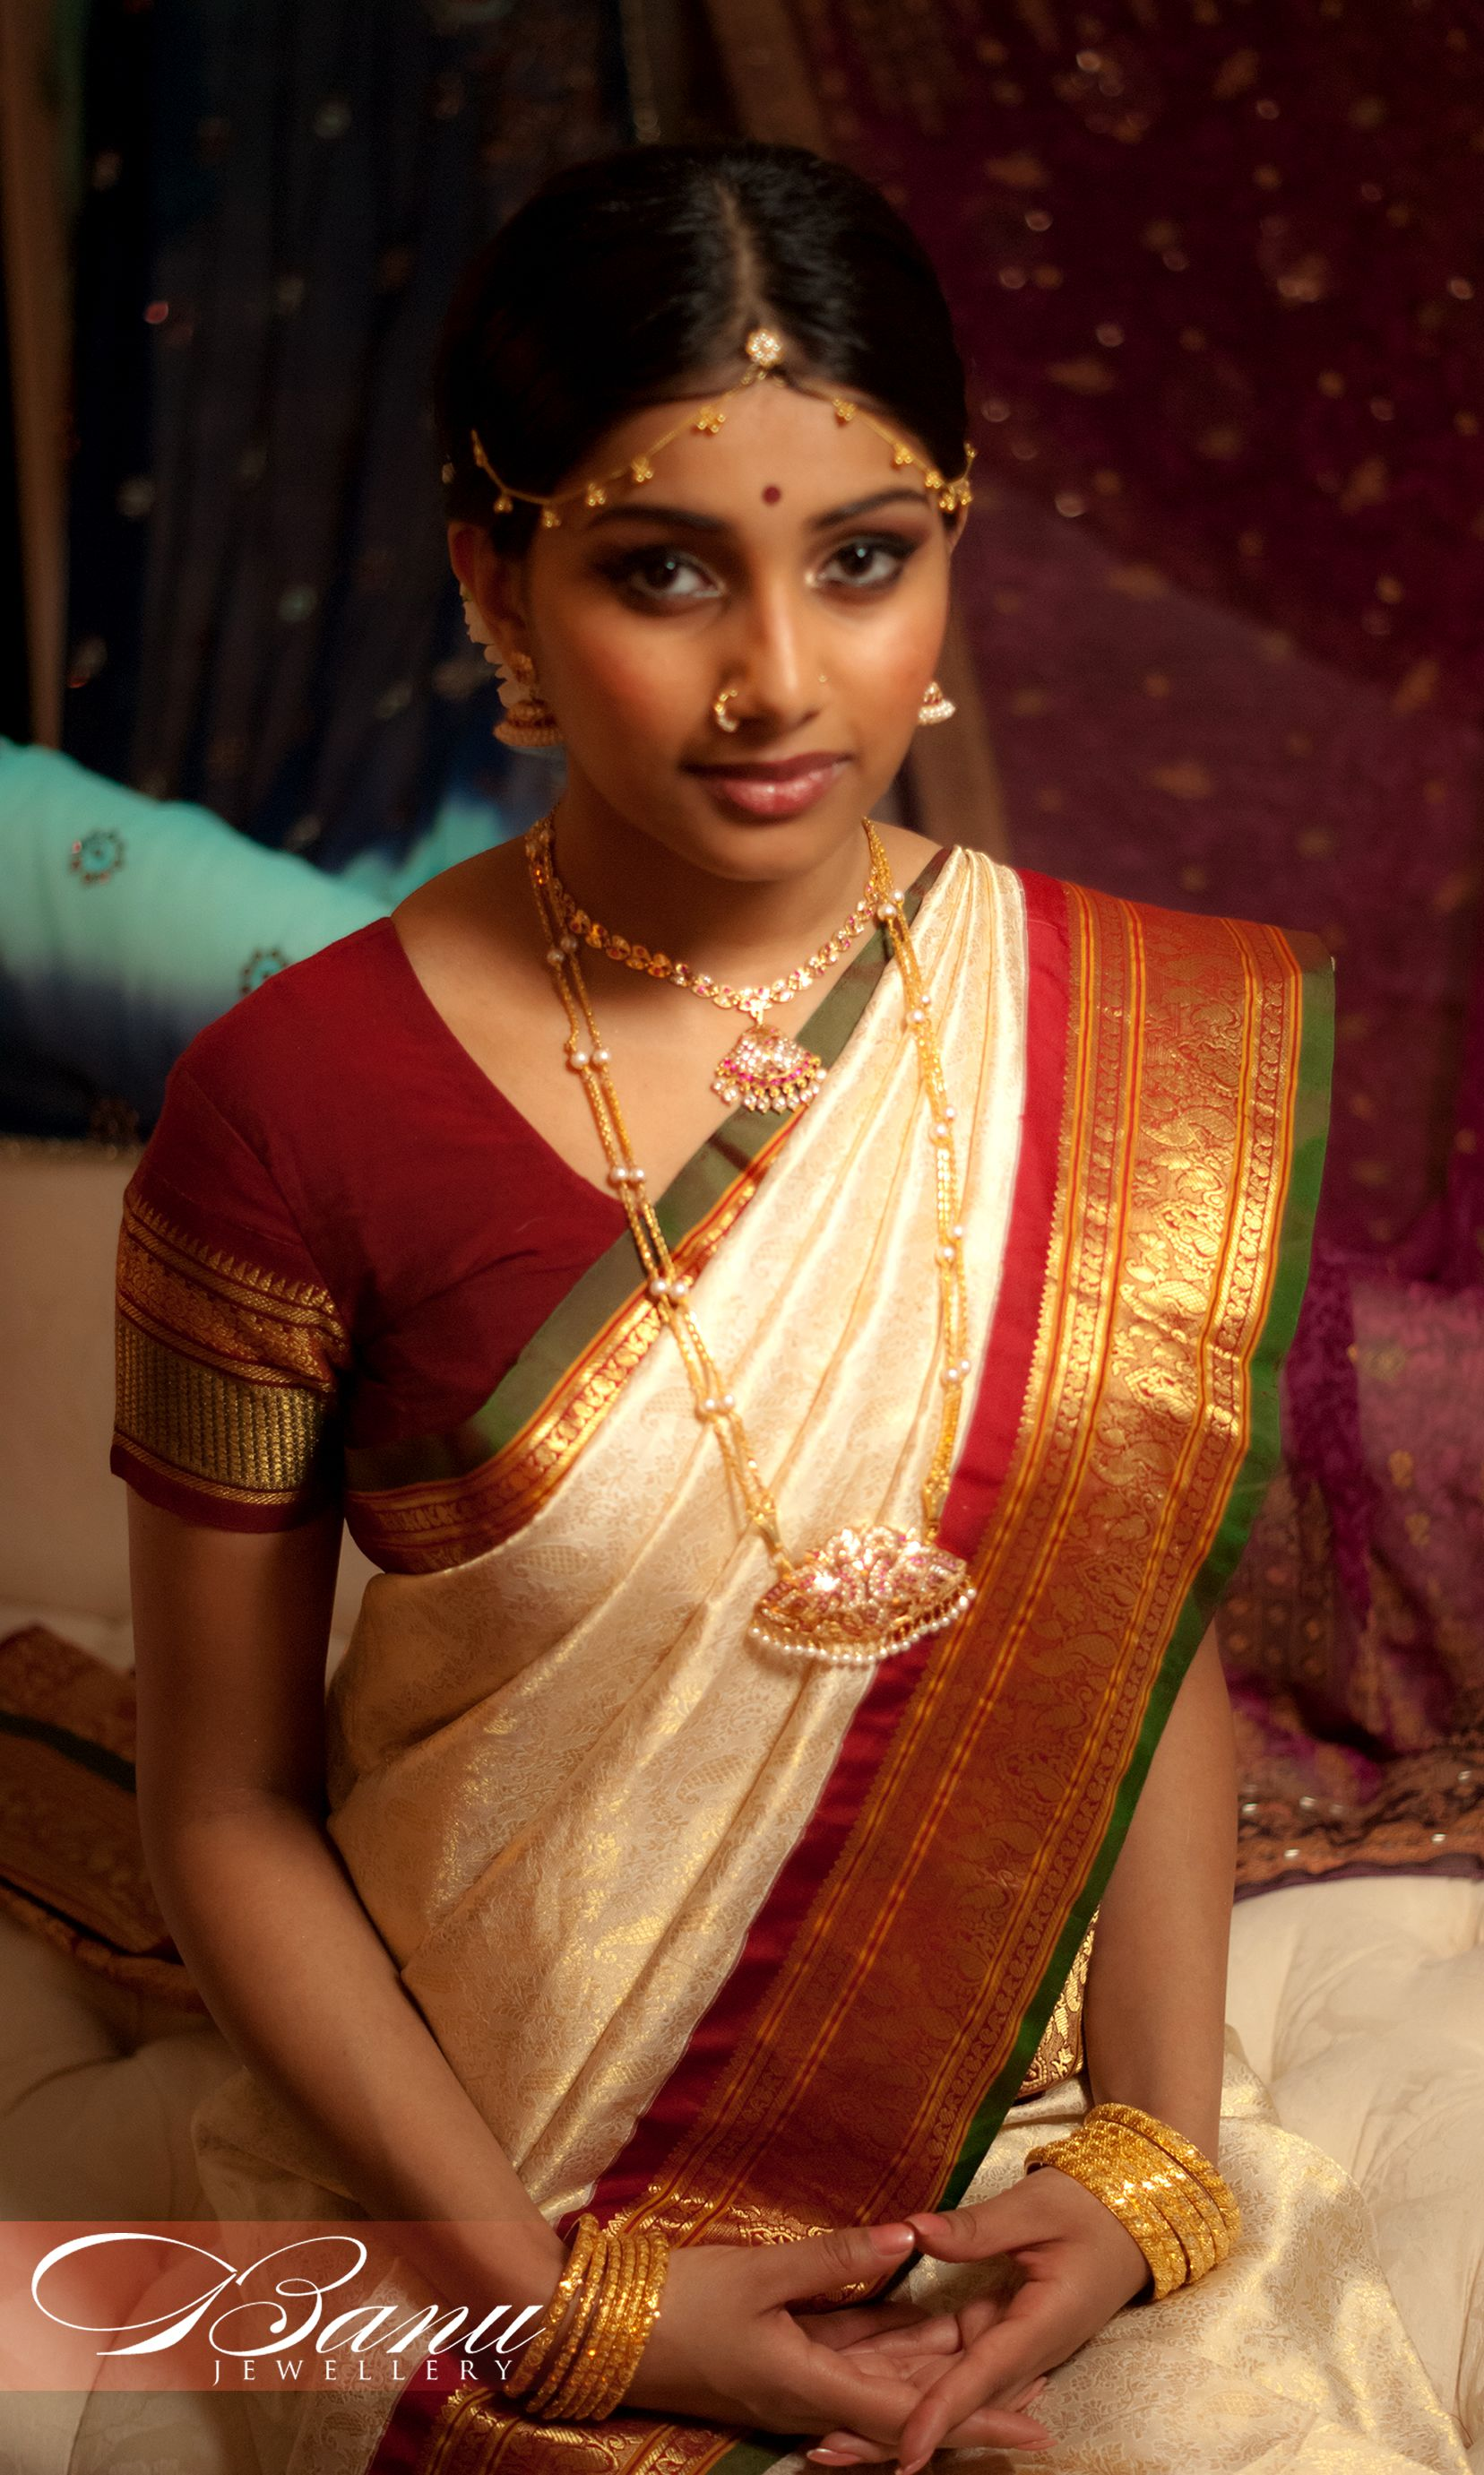 South Indian Actress Wallpapers In Hd Samantha Ruth: Traditional South Indian Tamil Bride Wearing Bridal Saree